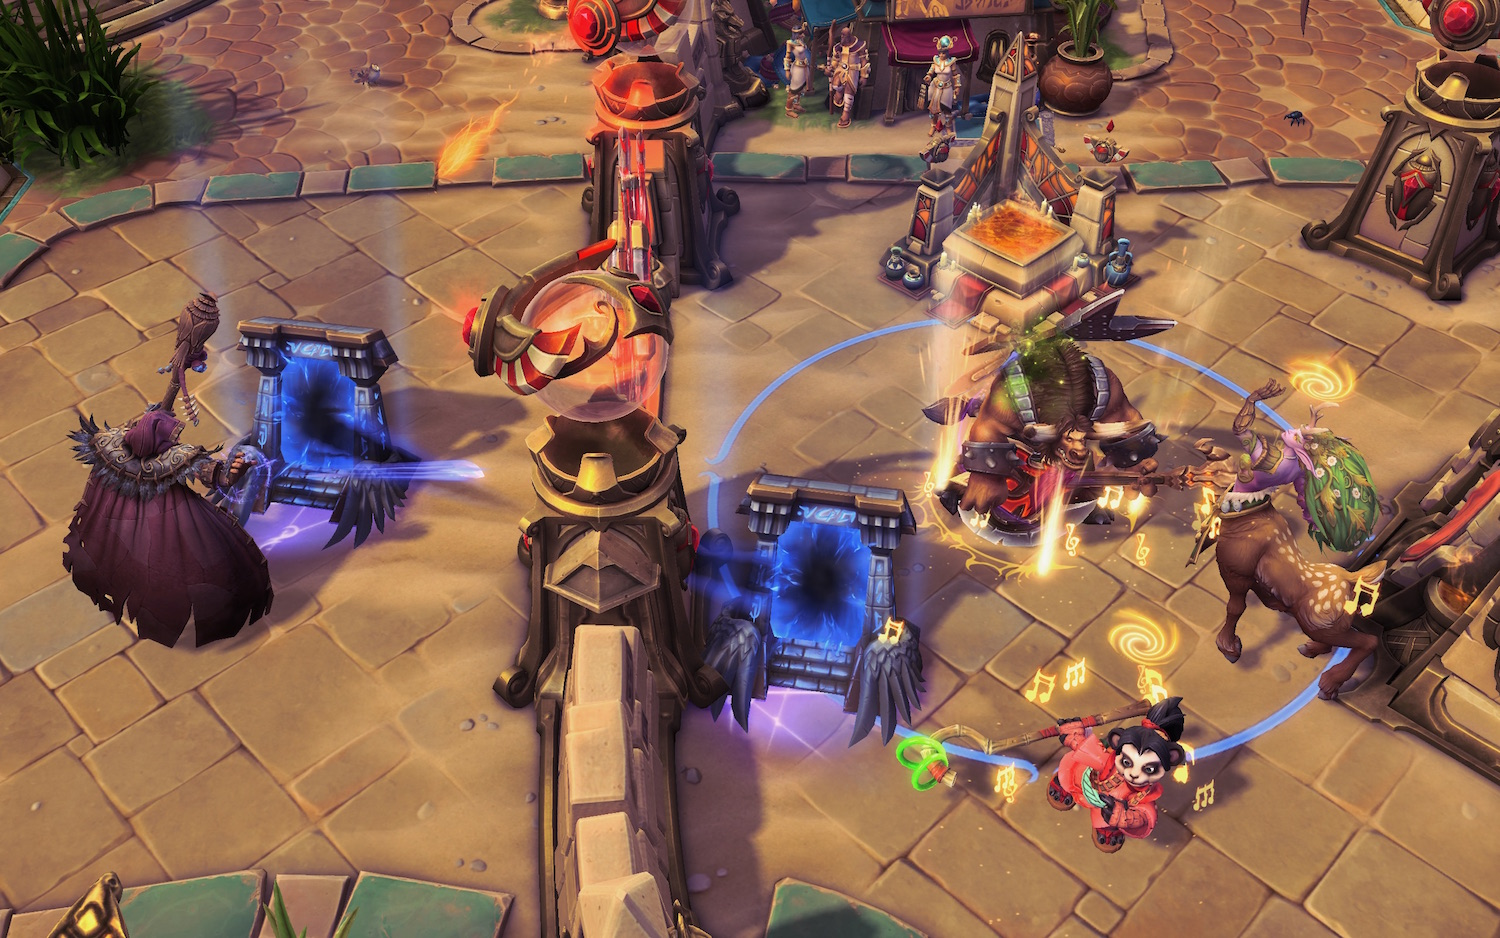 Wrecking buildings in Heroes of the Storm.